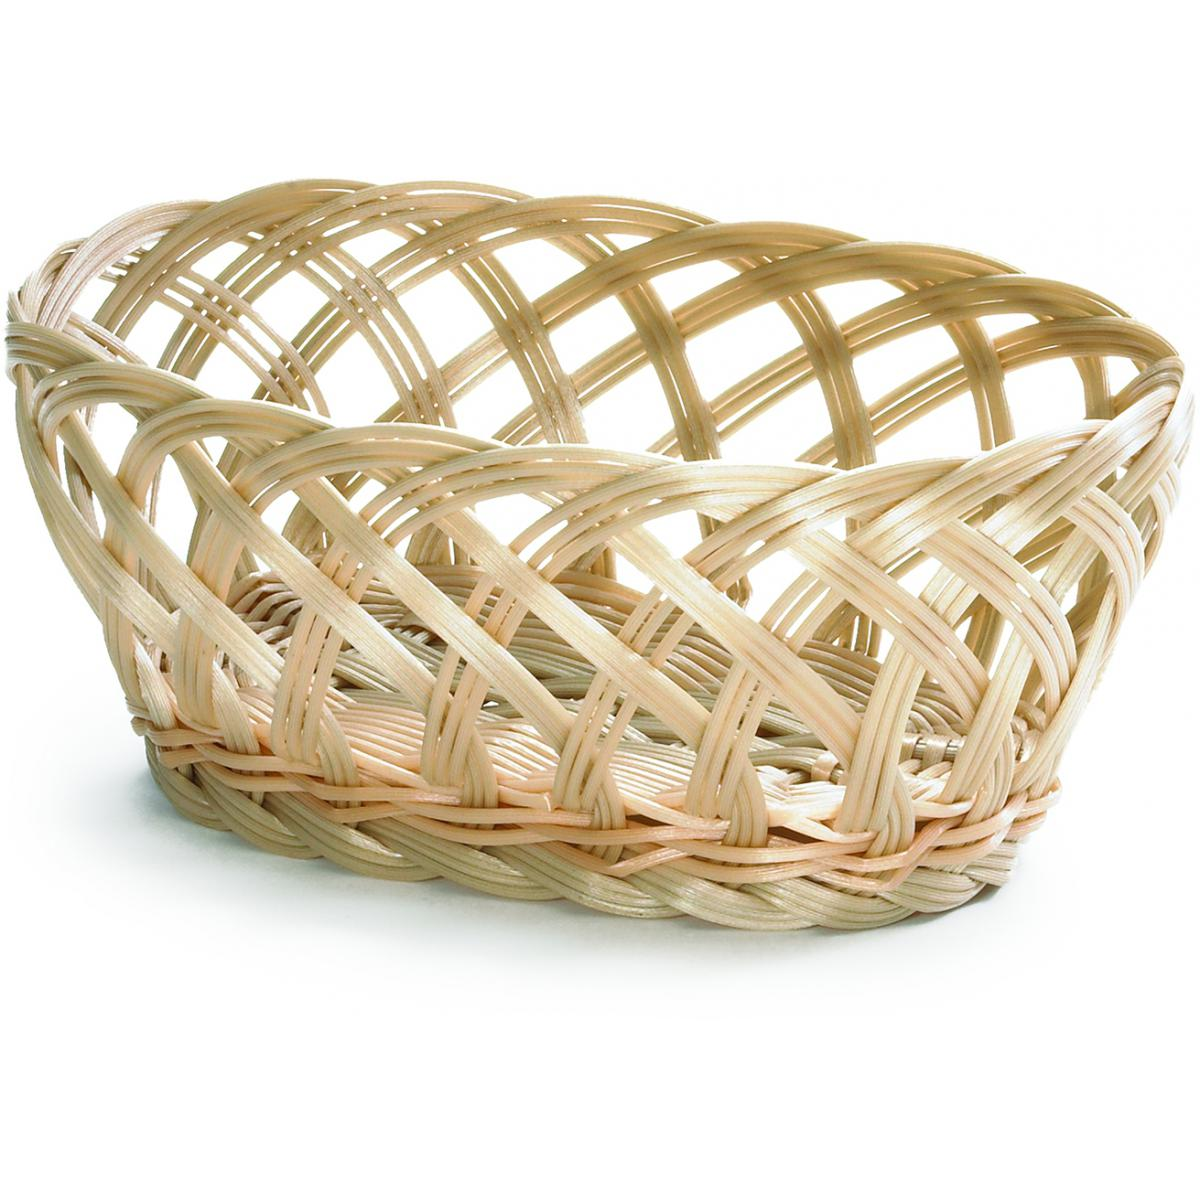 Basket Weaving Supplies Uk : Handwoven oval basket open weave noble express